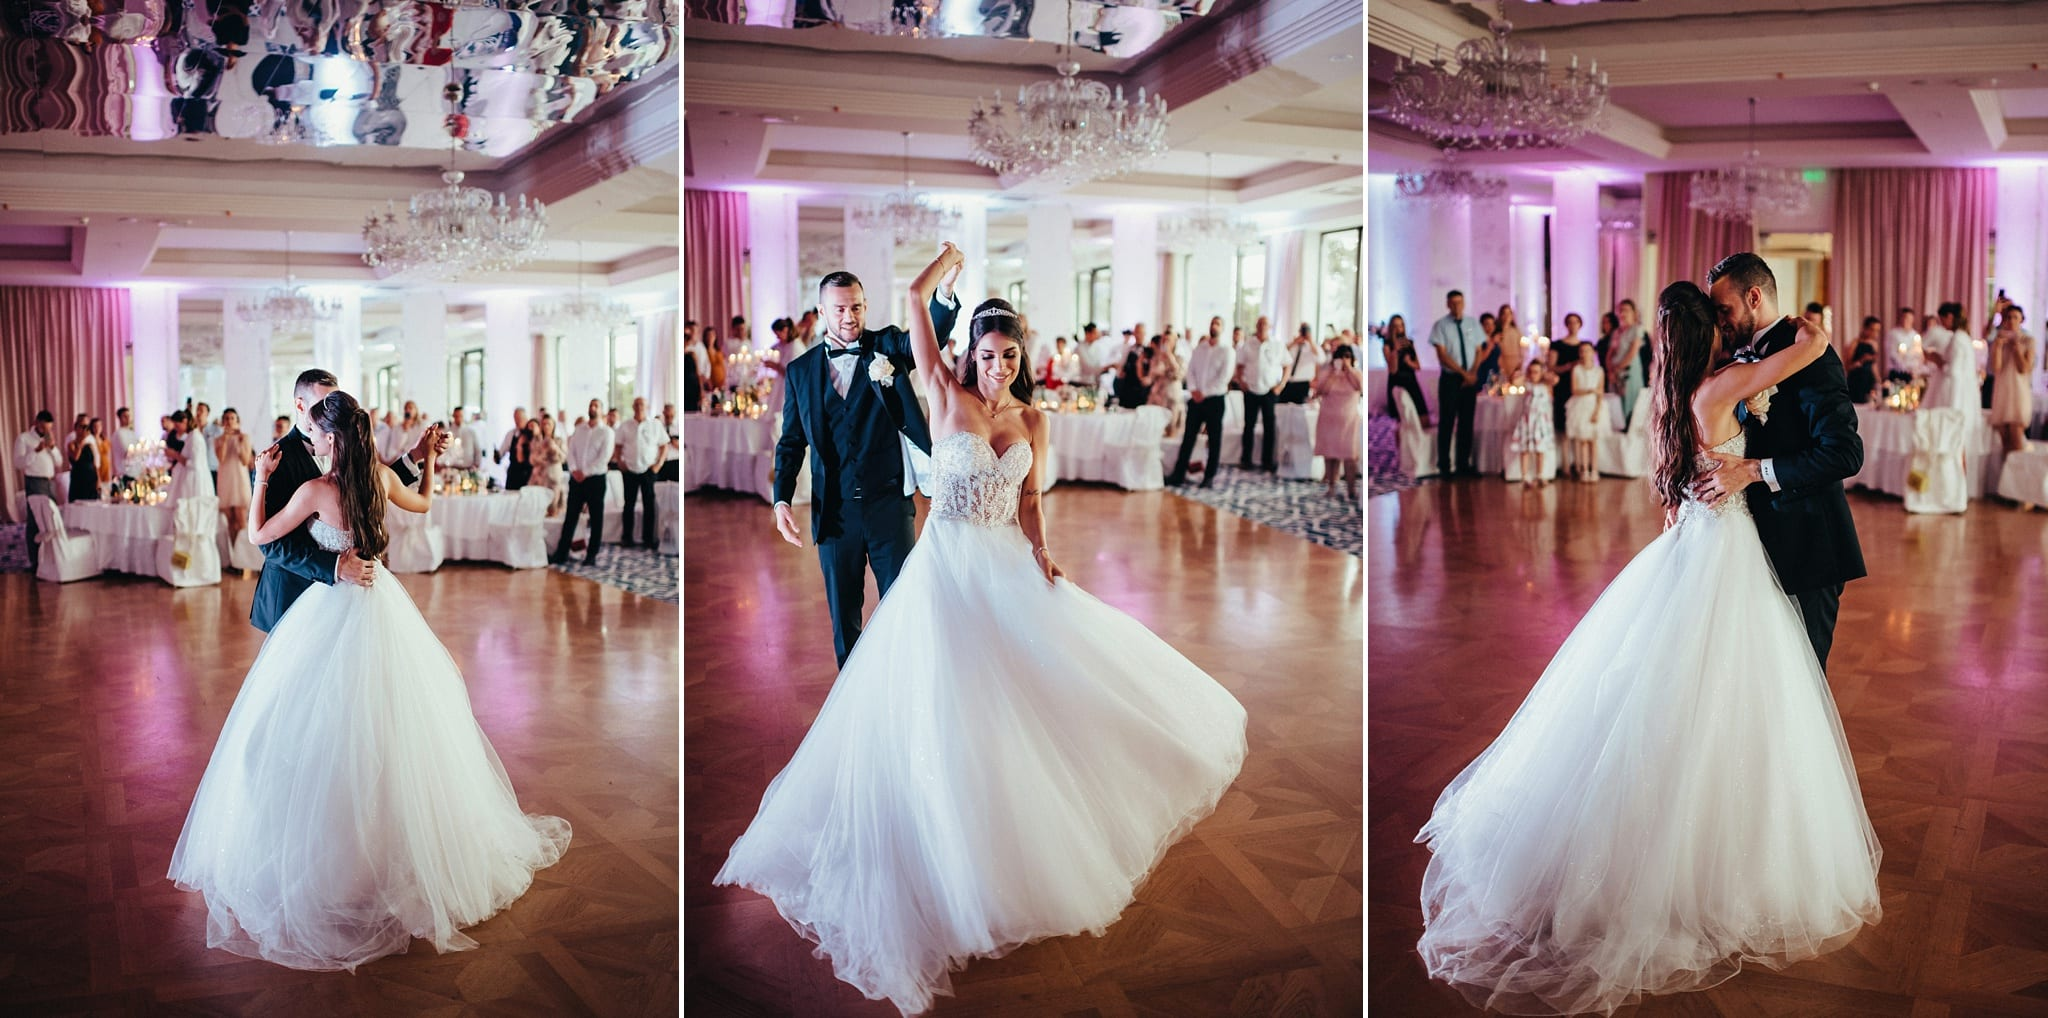 opatija wedding photographer traps perfect moments of first dance